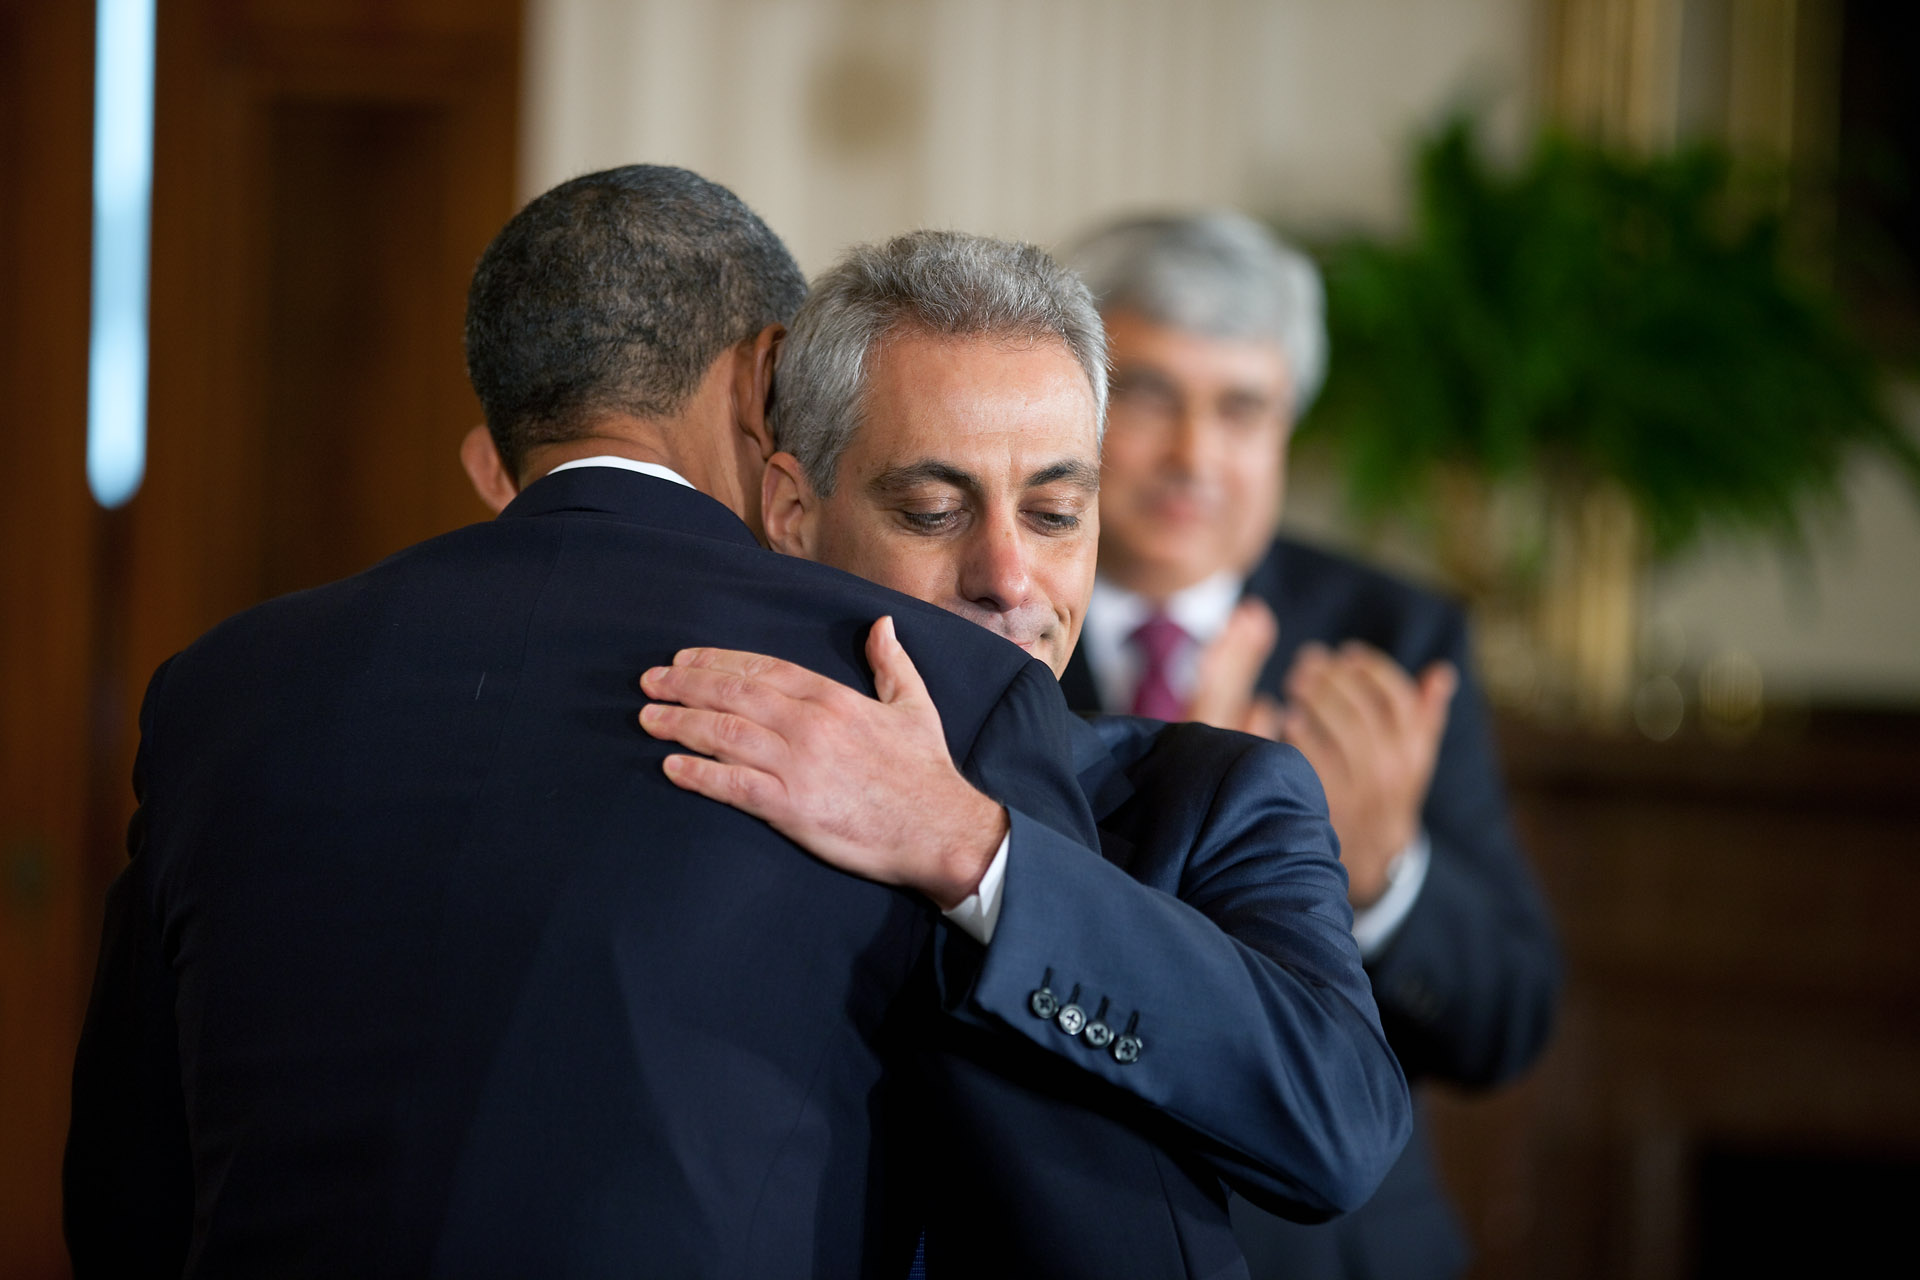 President Obama Hugs Outgoing White House Chief of Staff Rahm Emmanuel Following the Personel Announcement